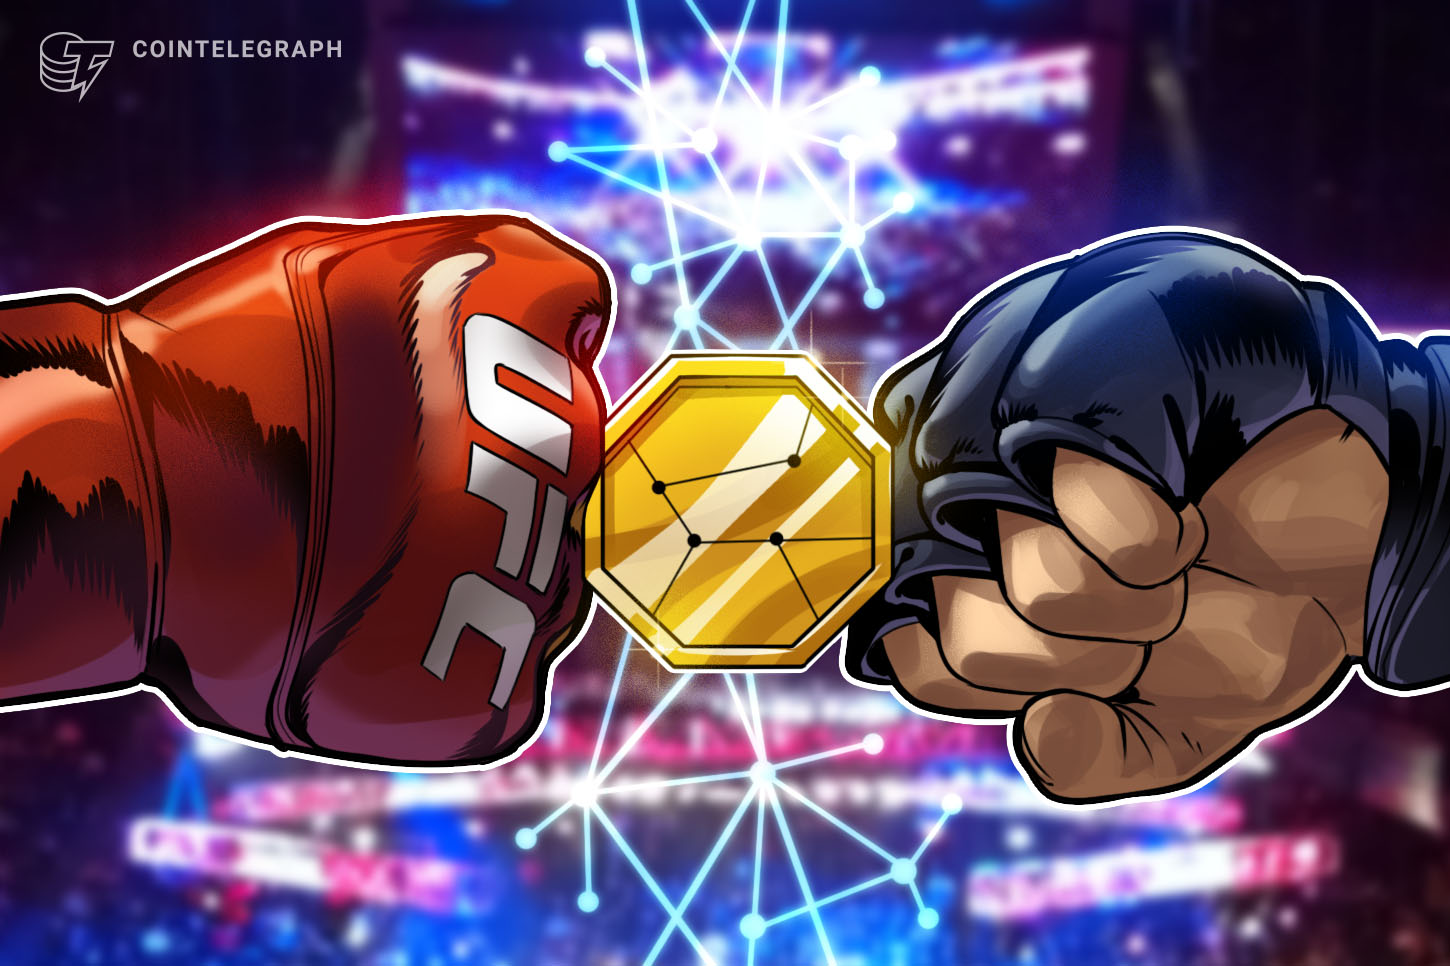 UFC inks $175 million sponsorship deal with Crypto.com